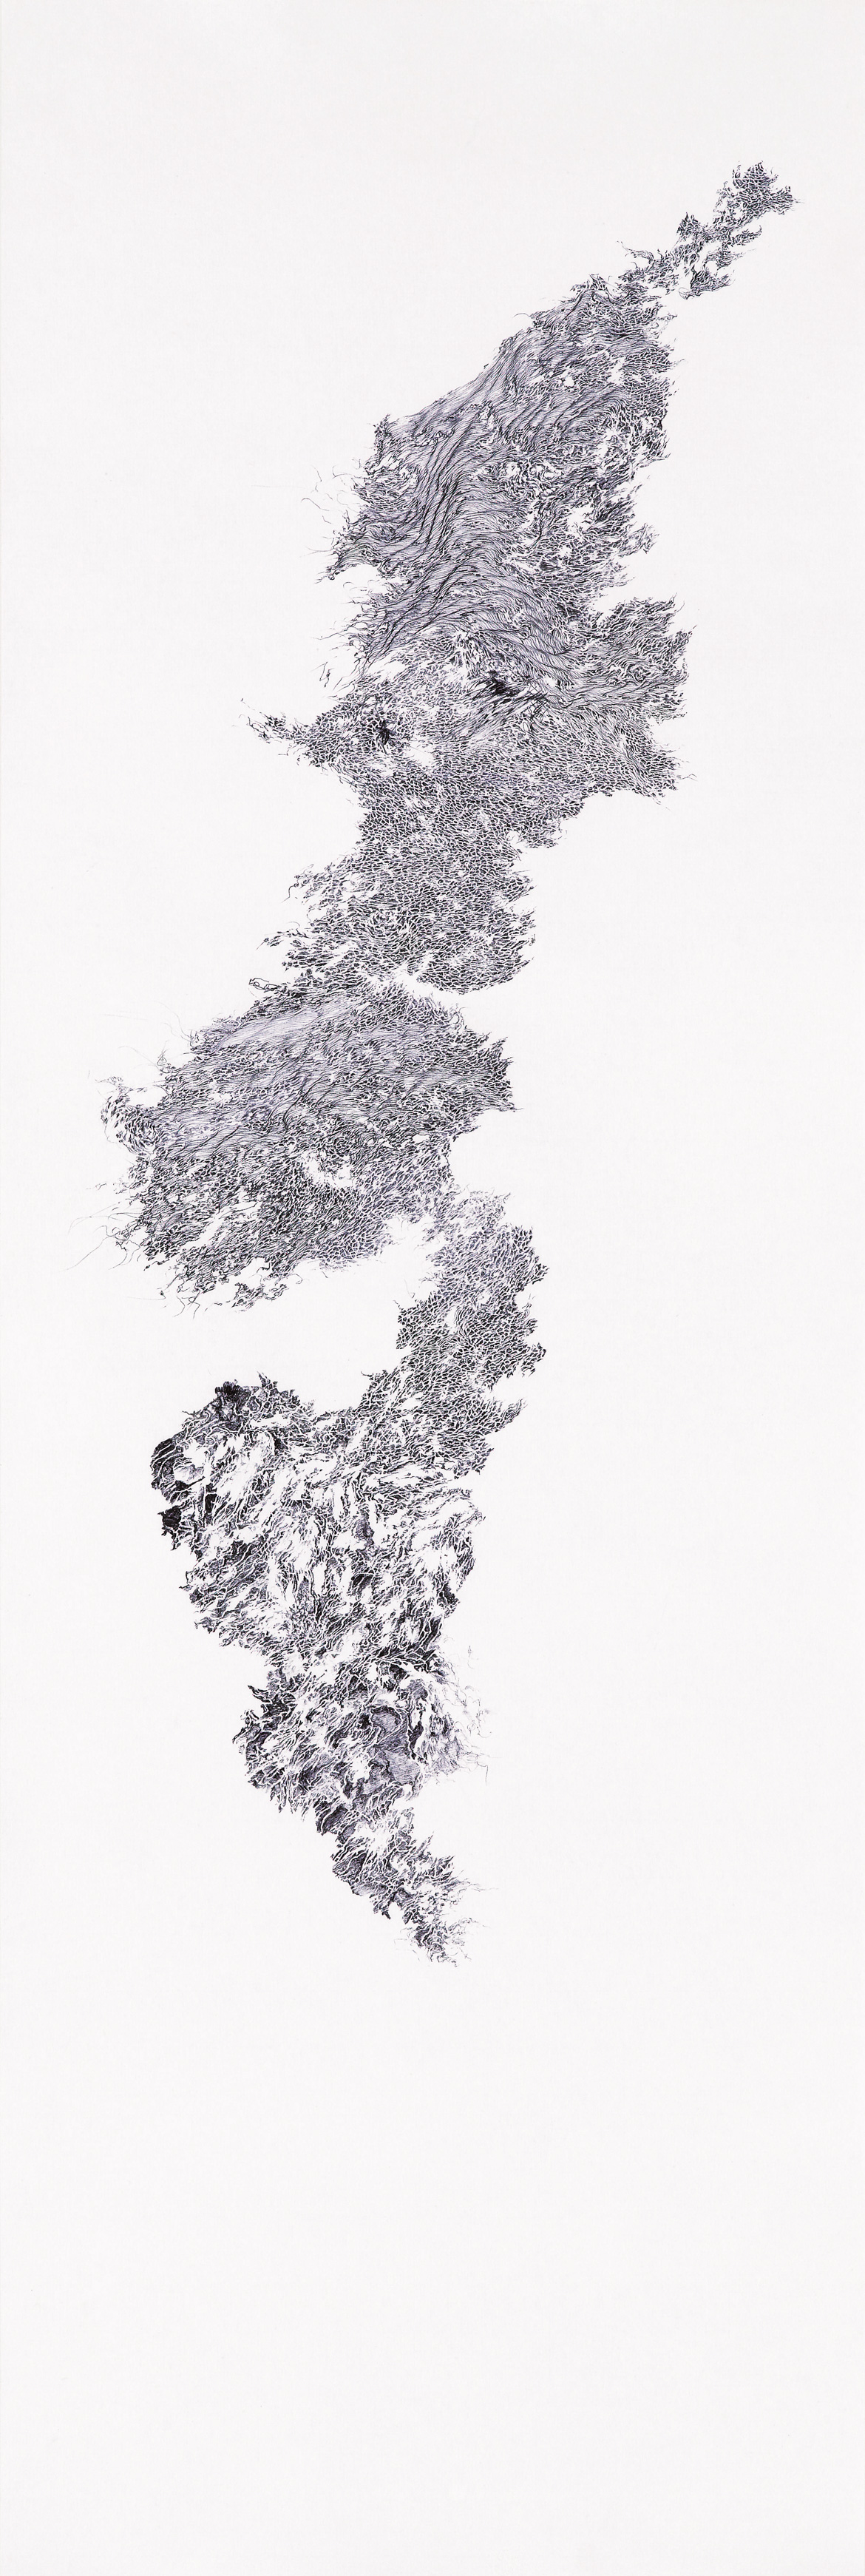 a moment of truth 5, ball pen on paper, 1 ft (w) x 3 ft (h), 2012